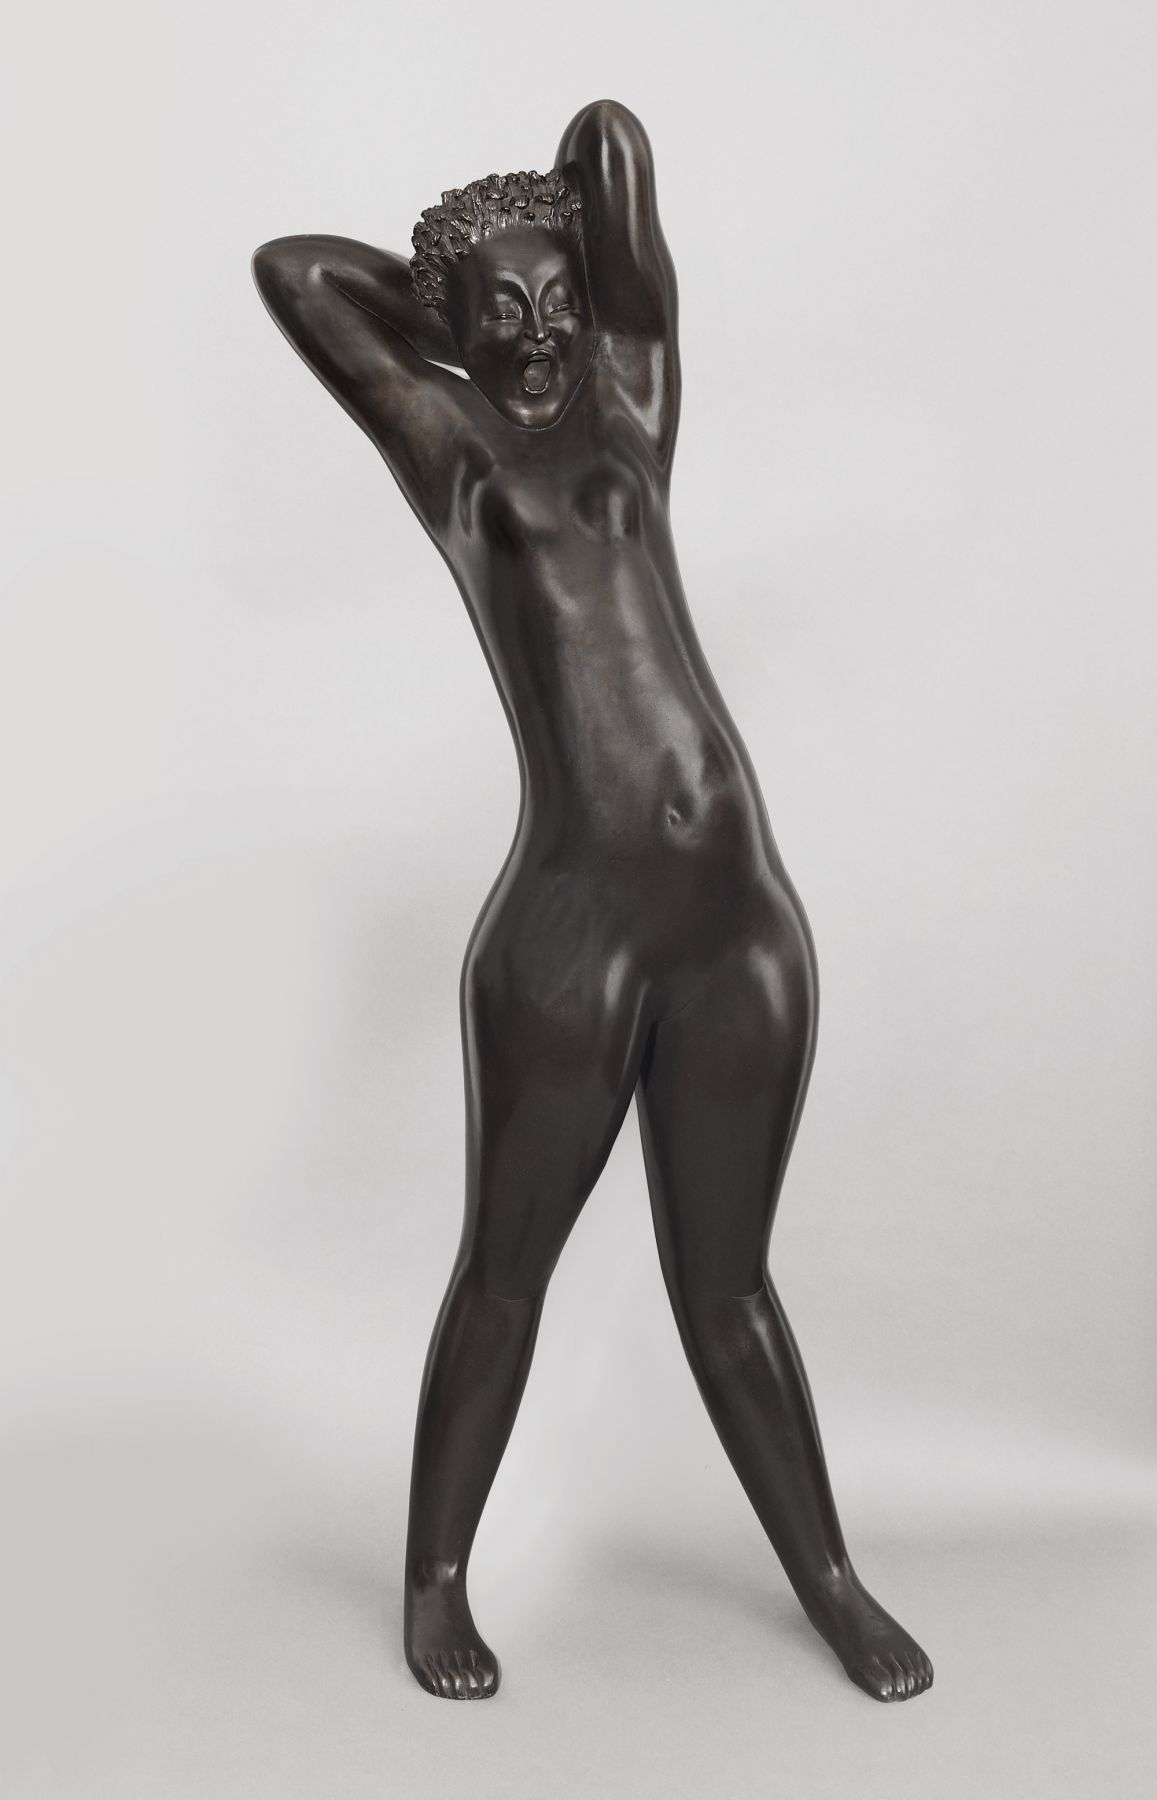 Hugo Robus, Dawn , 1931, bronze, 66 1/2 x 28 x 17 inches, Edition of 3 - lifetime cast